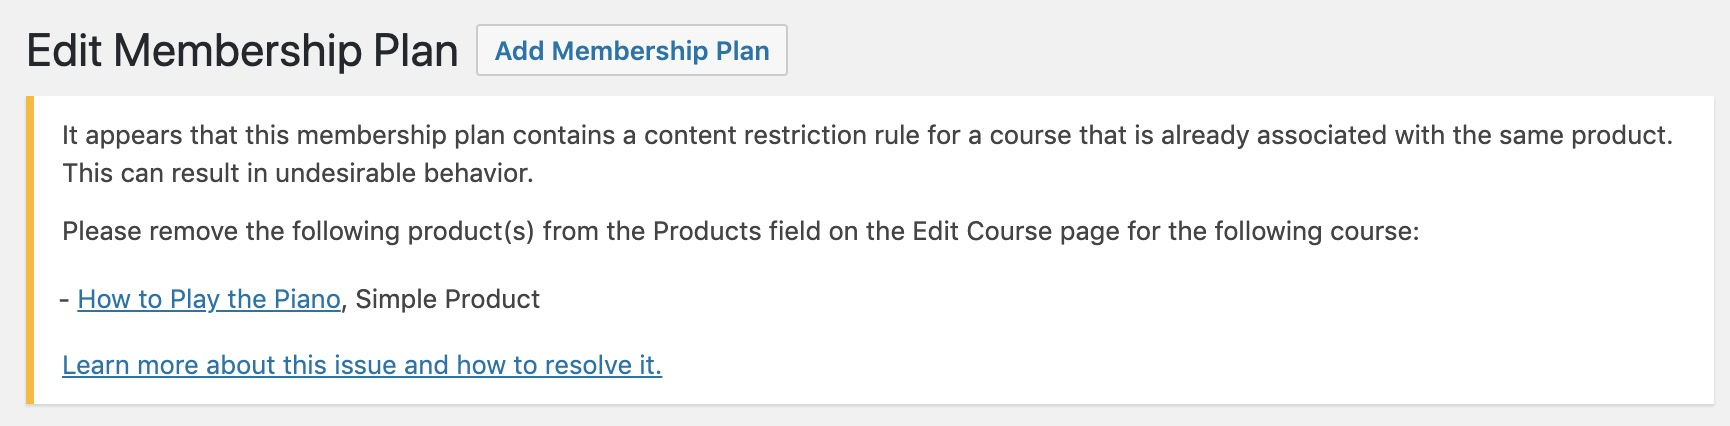 Notice on Edit Membership Plan page